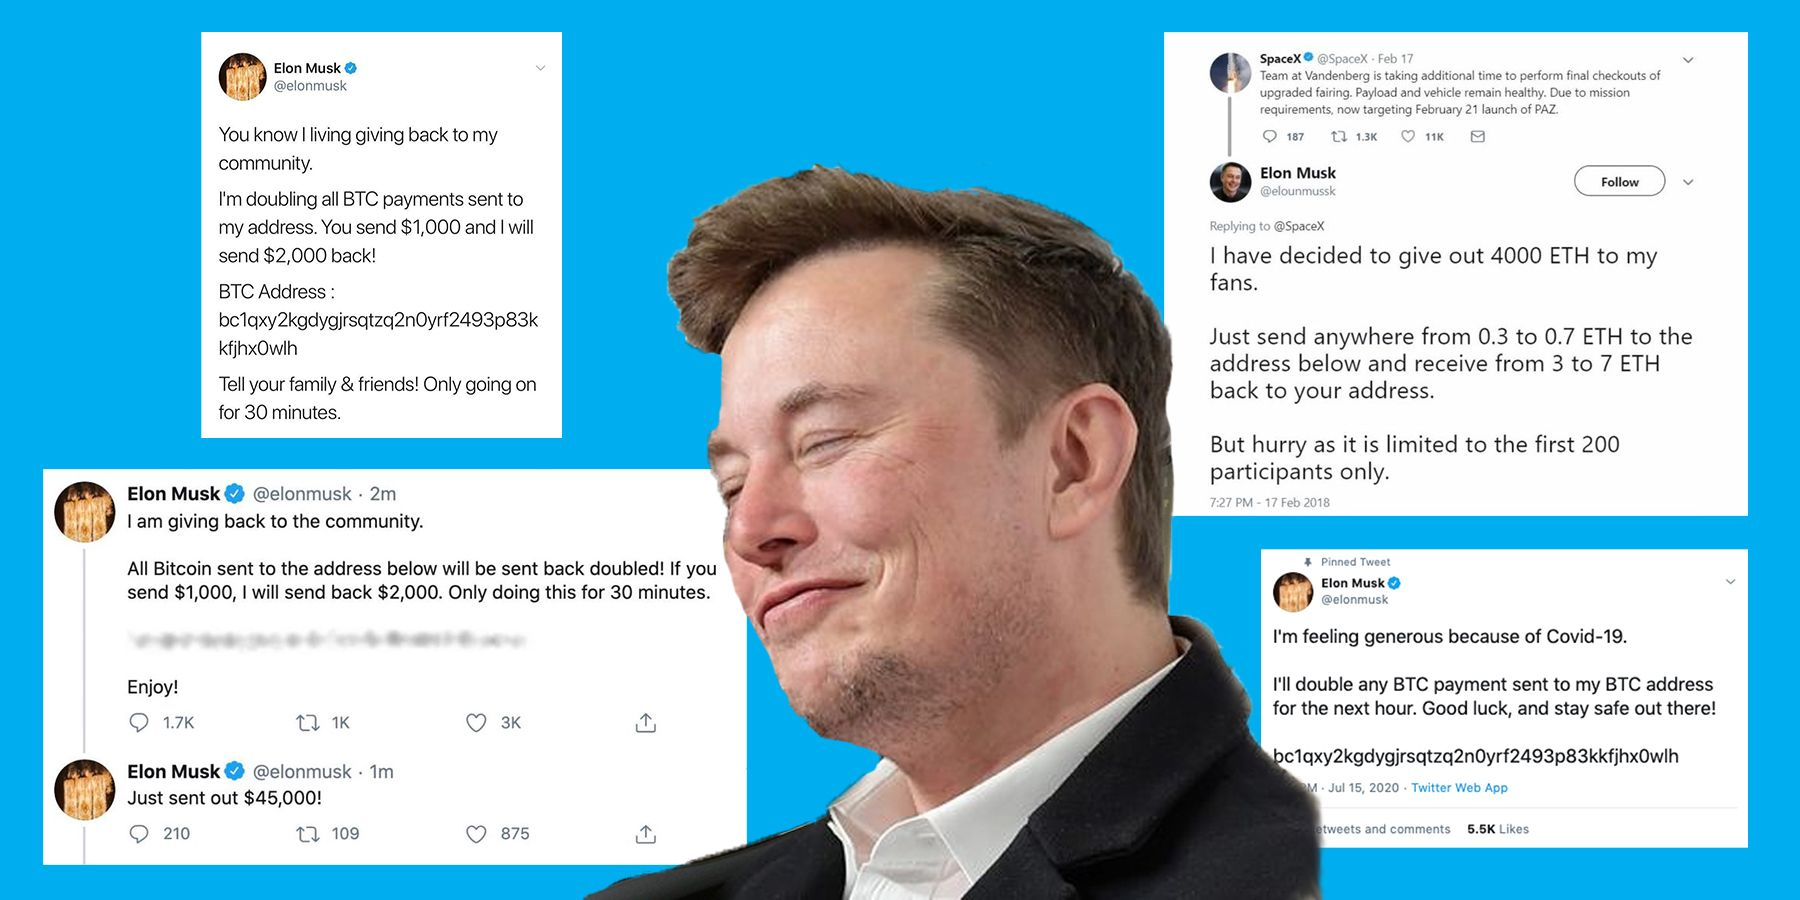 Why does elon musk prefer to be surrounded by hollywood celebrities